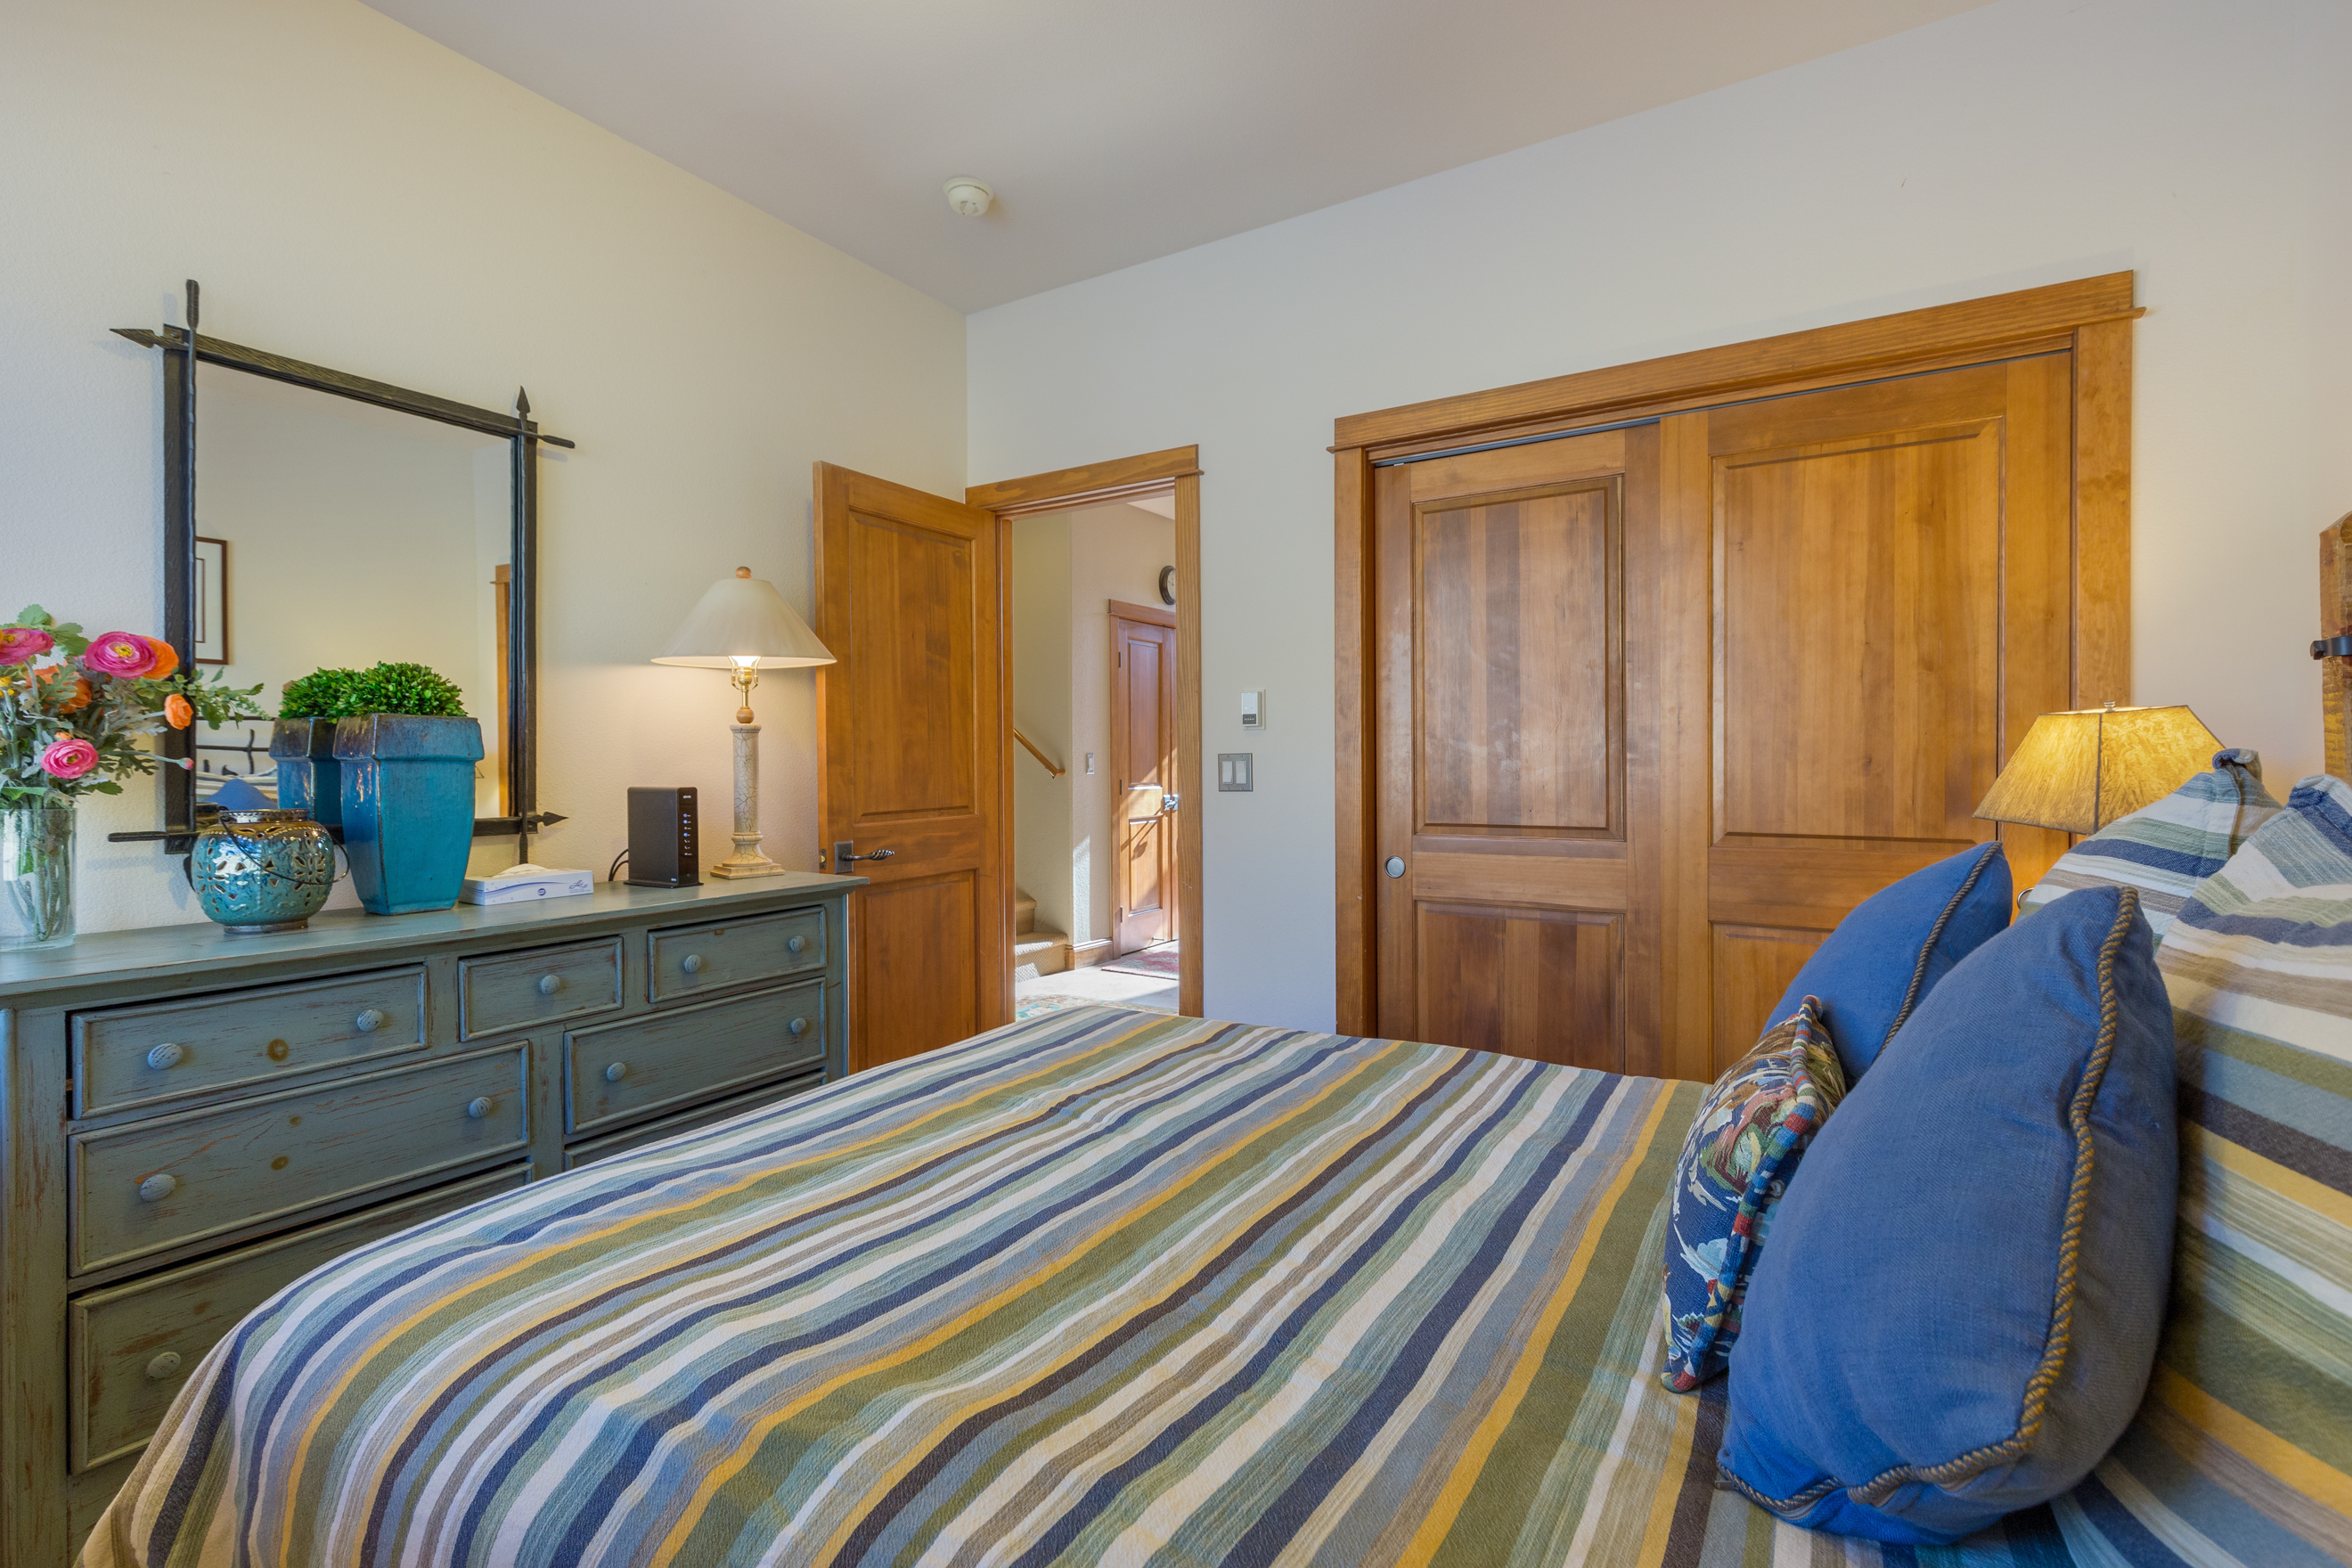 The first guest bedroom features a queen-sized bed.